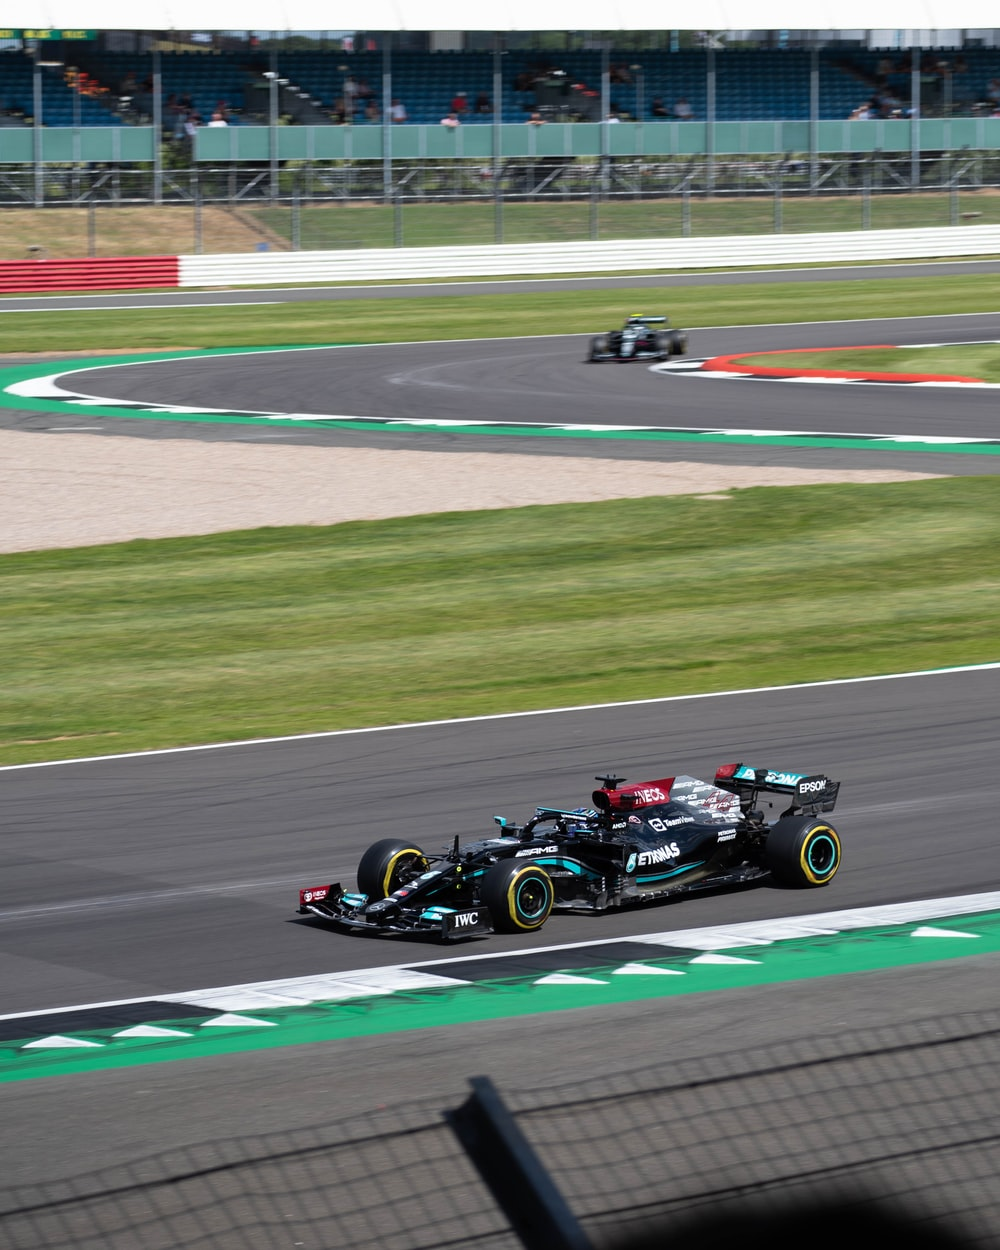 black and red f 1 car on track field during daytime